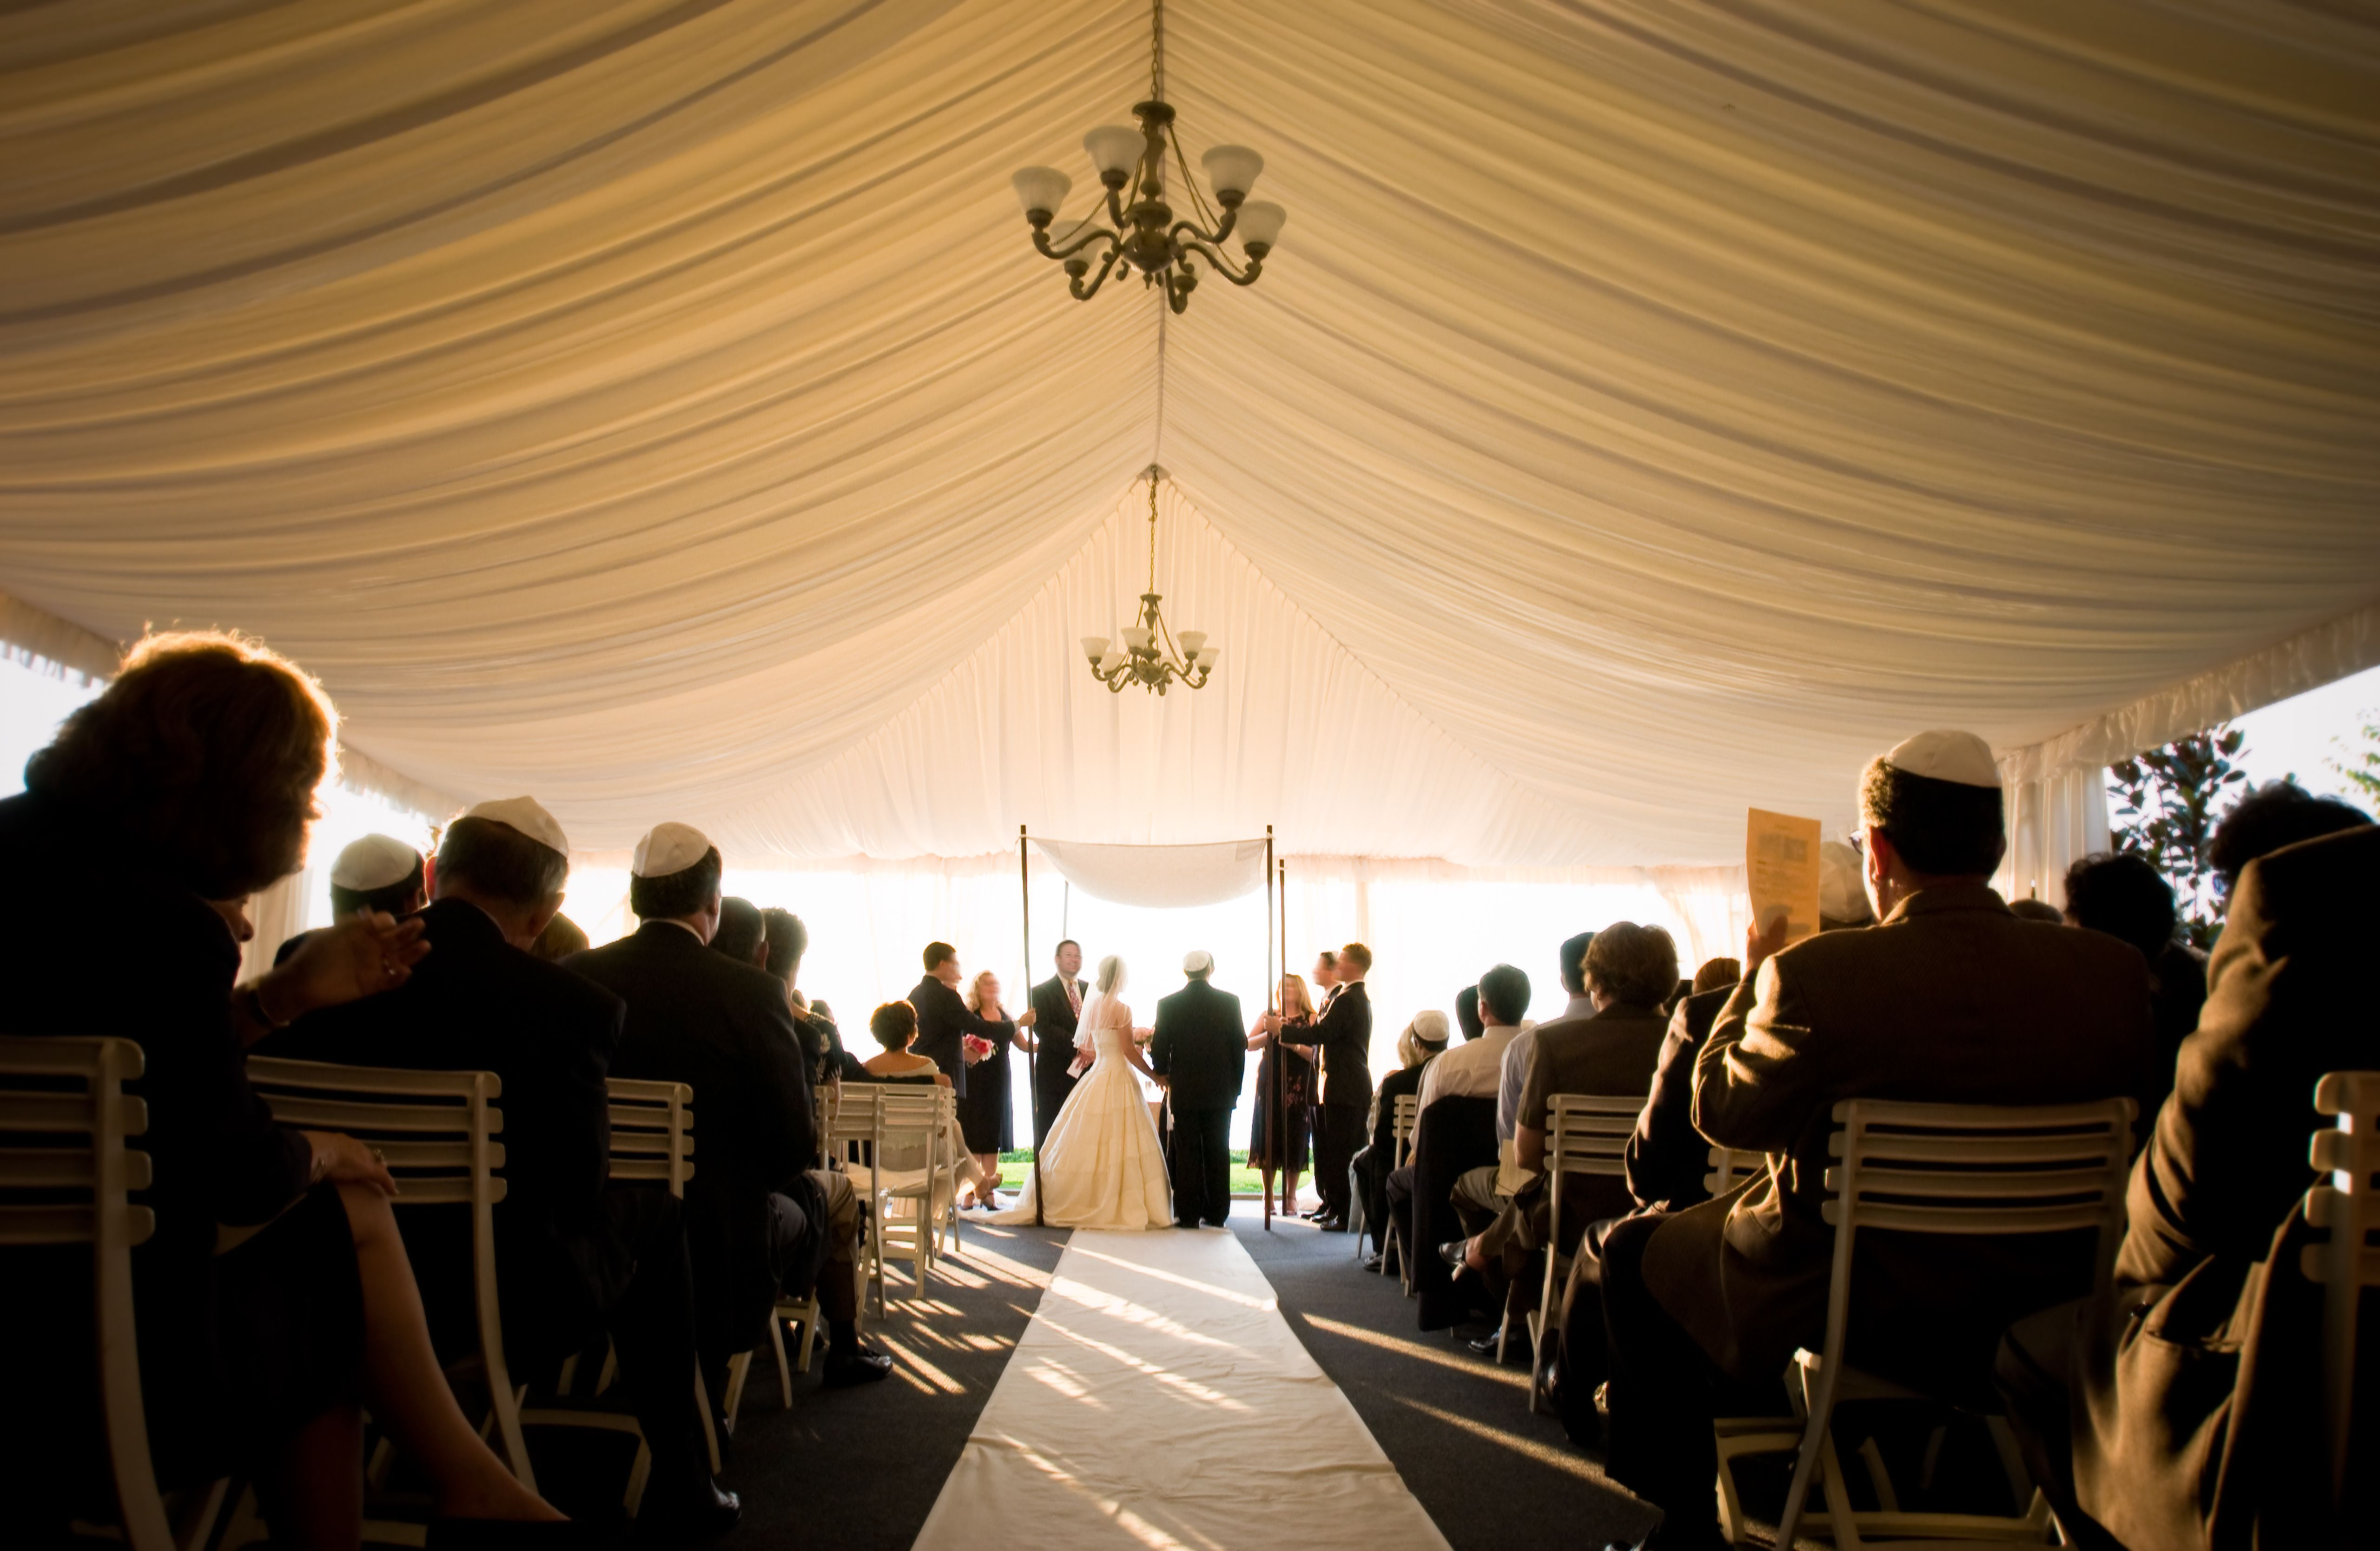 How Do Jewish Weddings And Marriage Work